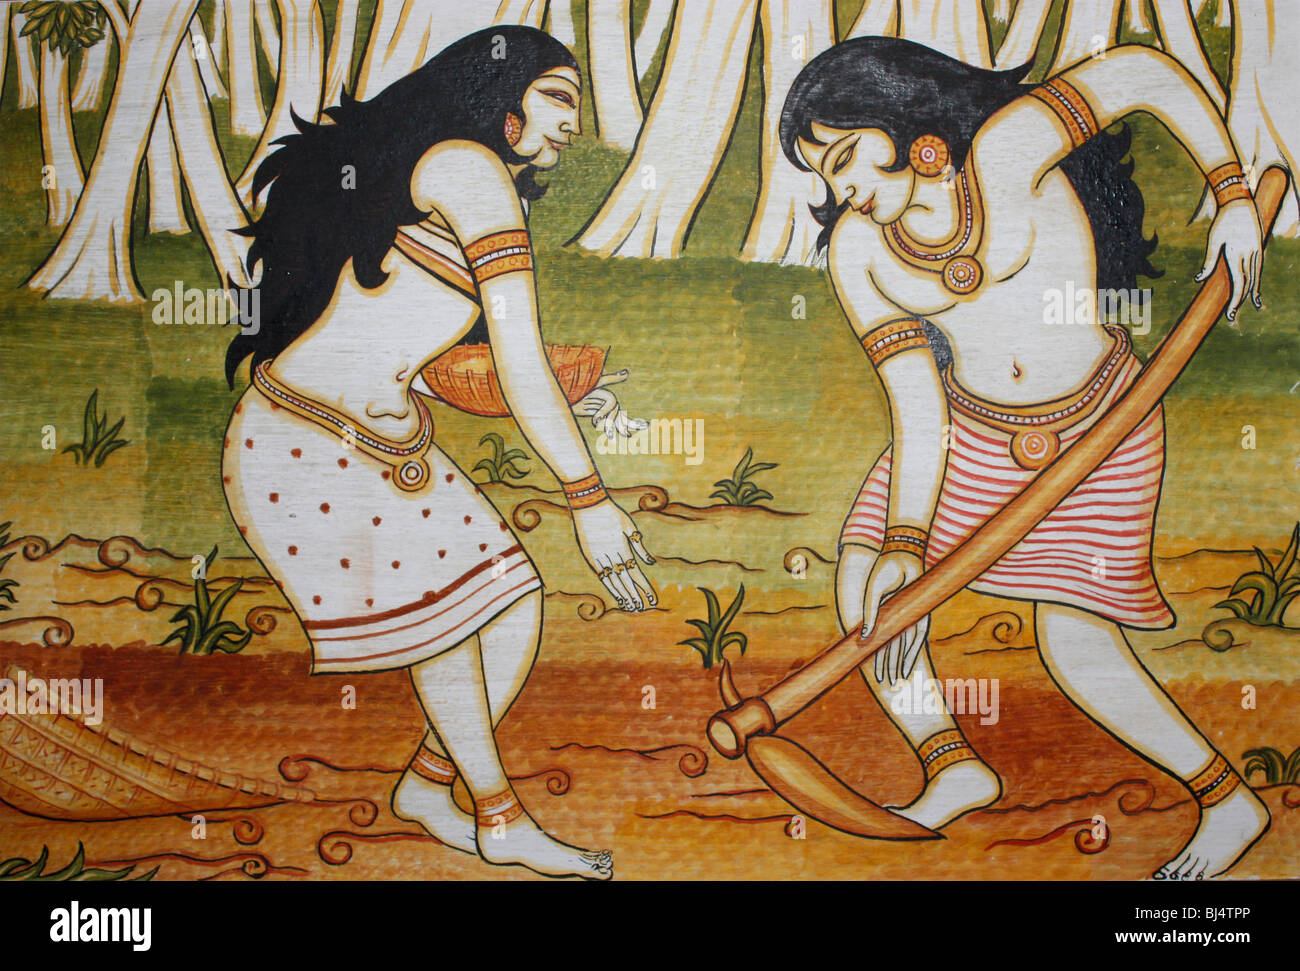 A picture painted on wall showing typical Indian ethnicity culture - Stock Image